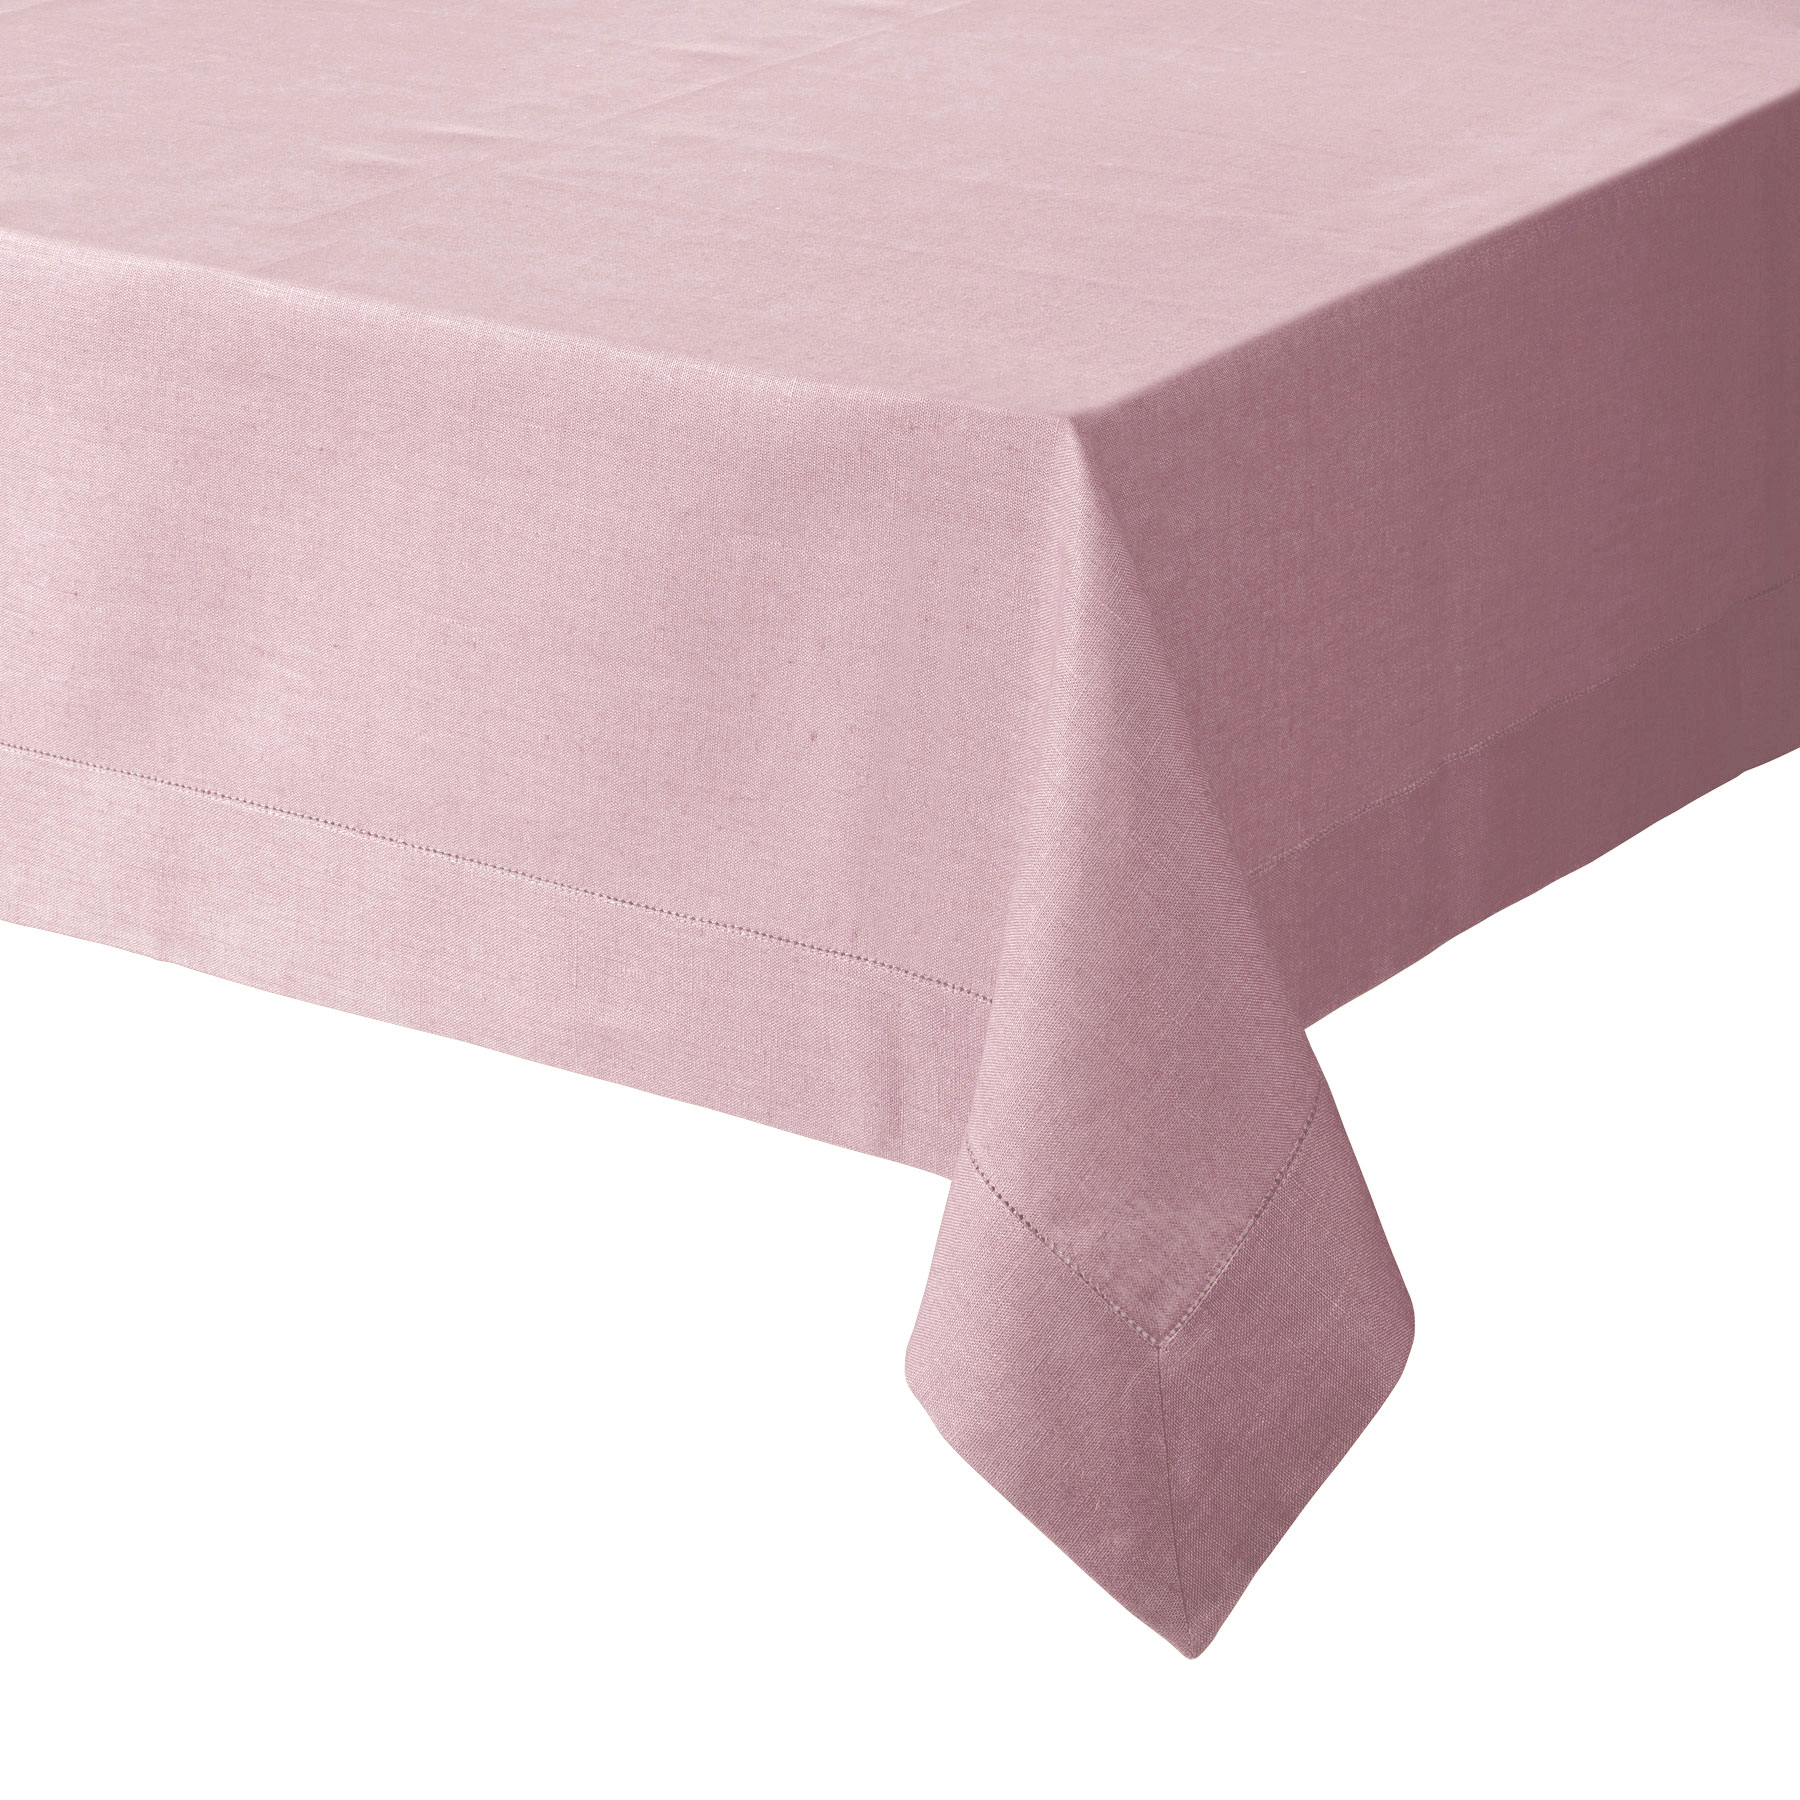 Light Pink Kitchen Towels